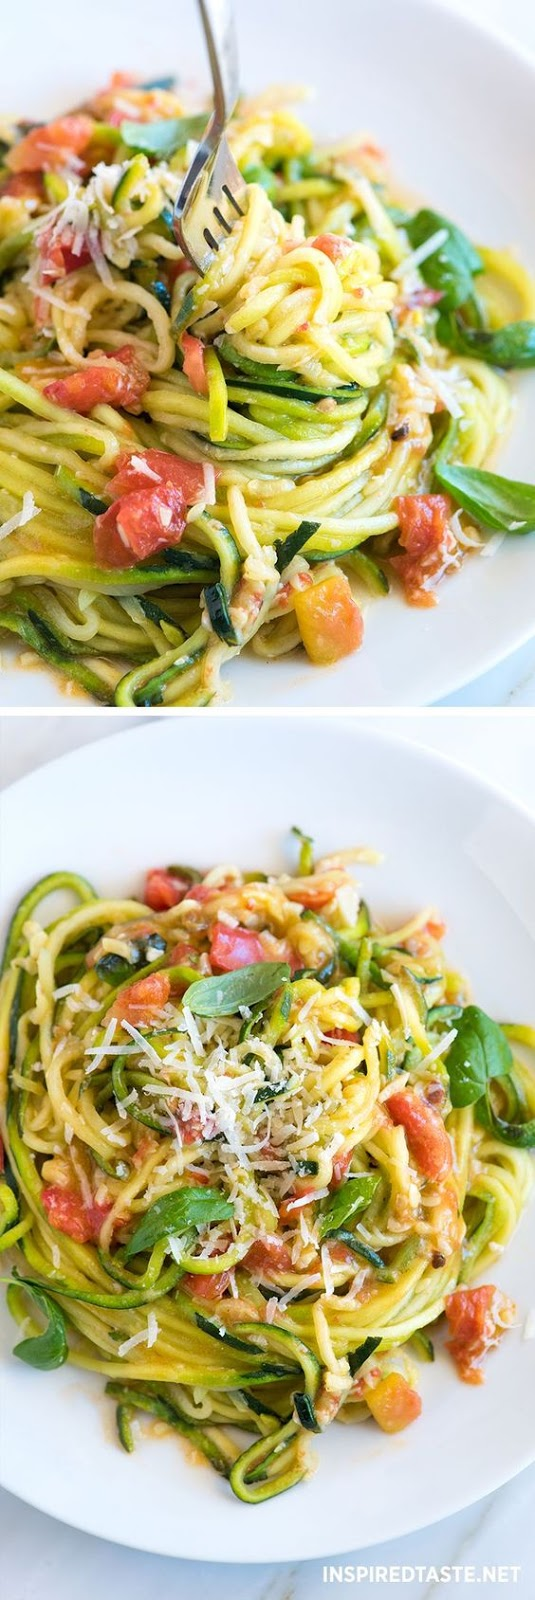 Guilt-Free Garlic Parmesan Zucchini Noodles Pasta Recipe #Guilt_Free #Garlic #Parmesan #Zucchini #Noodles #Pasta #Recipe #DESSERTS #HEALTHYFOOD #EASY_RECIPES #DINNER #LAUCH #DELICIOUS #EASY #HOLIDAYS #RECIPE #SPECIAL_DIET #WORLD_CUISINE #CAKE #GRILL #APPETIZERS #HEALTHY_RECIPES #DRINKS #COOKING_METHOD #ITALIAN_RECIPES #MEAT #VEGAN_RECIPES #COOKIES #PASTA #FRUIT #SALAD #SOUP_APPETIZERS #NON_ALCOHOLIC_DRINKS #MEAL_PLANNING #VEGETABLES #SOUP #PASTRY #CHOCOLATE #DAIRY #ALCOHOLIC_DRINKS #BULGUR_SALAD #BAKING #SNACKS #BEEF_RECIPES #MEAT_APPETIZERS #MEXICAN_RECIPES #BREAD #ASIAN_RECIPES #SEAFOOD_APPETIZERS #MUFFINS #BREAKFAST_AND_BRUNCH #CONDIMENTS #CUPCAKES #CHEESE #CHICKEN_RECIPES #PIE #COFFEE #NO_BAKE_DESSERTS #HEALTHY_SNACKS #SEAFOOD #GRAIN #LUNCHES_DINNERS #MEXICAN #QUICK_BREAD #LIQUOR